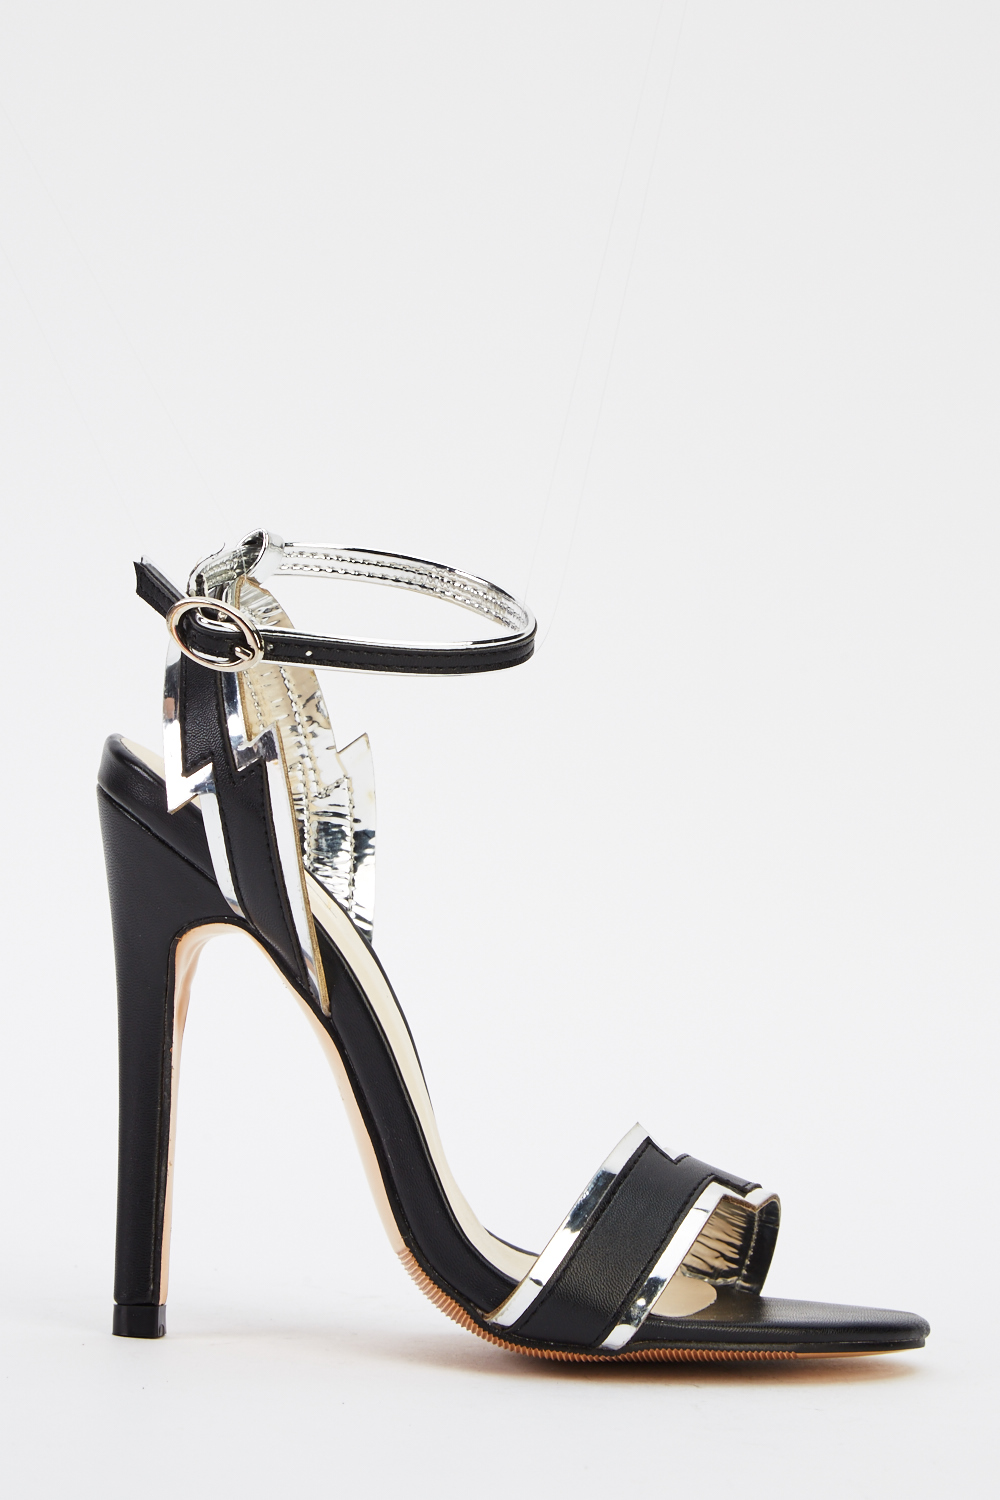 492429f90f2f Two Tone Ankle Strap Heels - Just £5